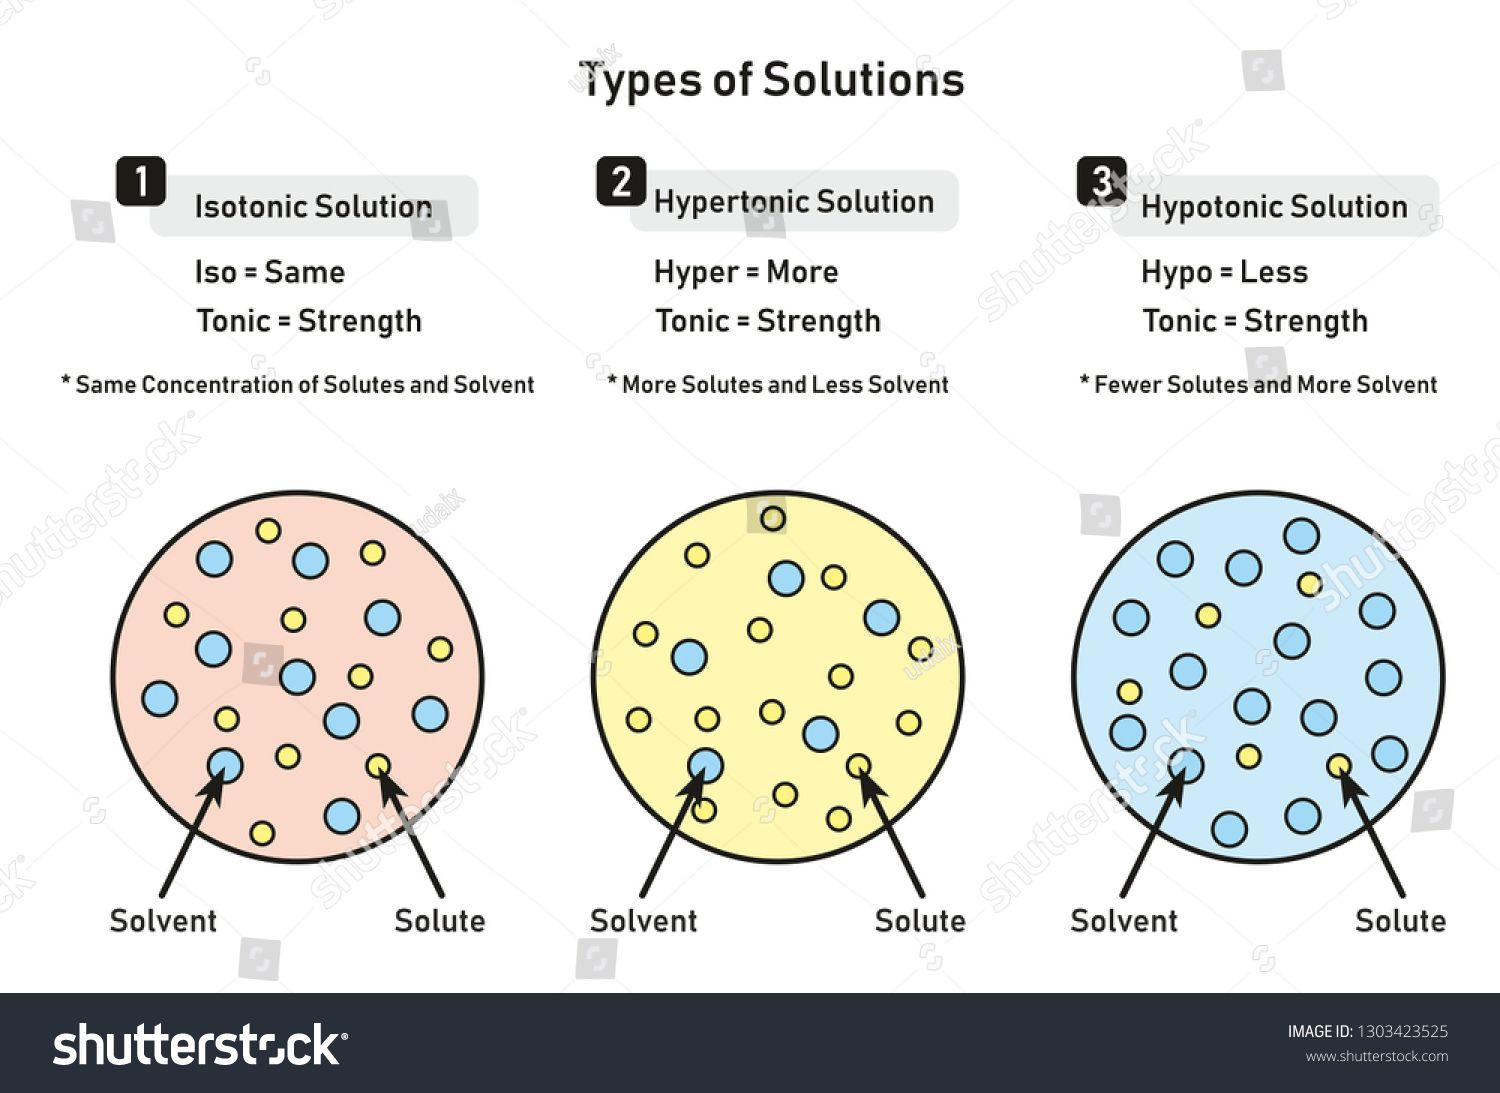 Types Of Solutions Infographic Diagram Including Isotonic